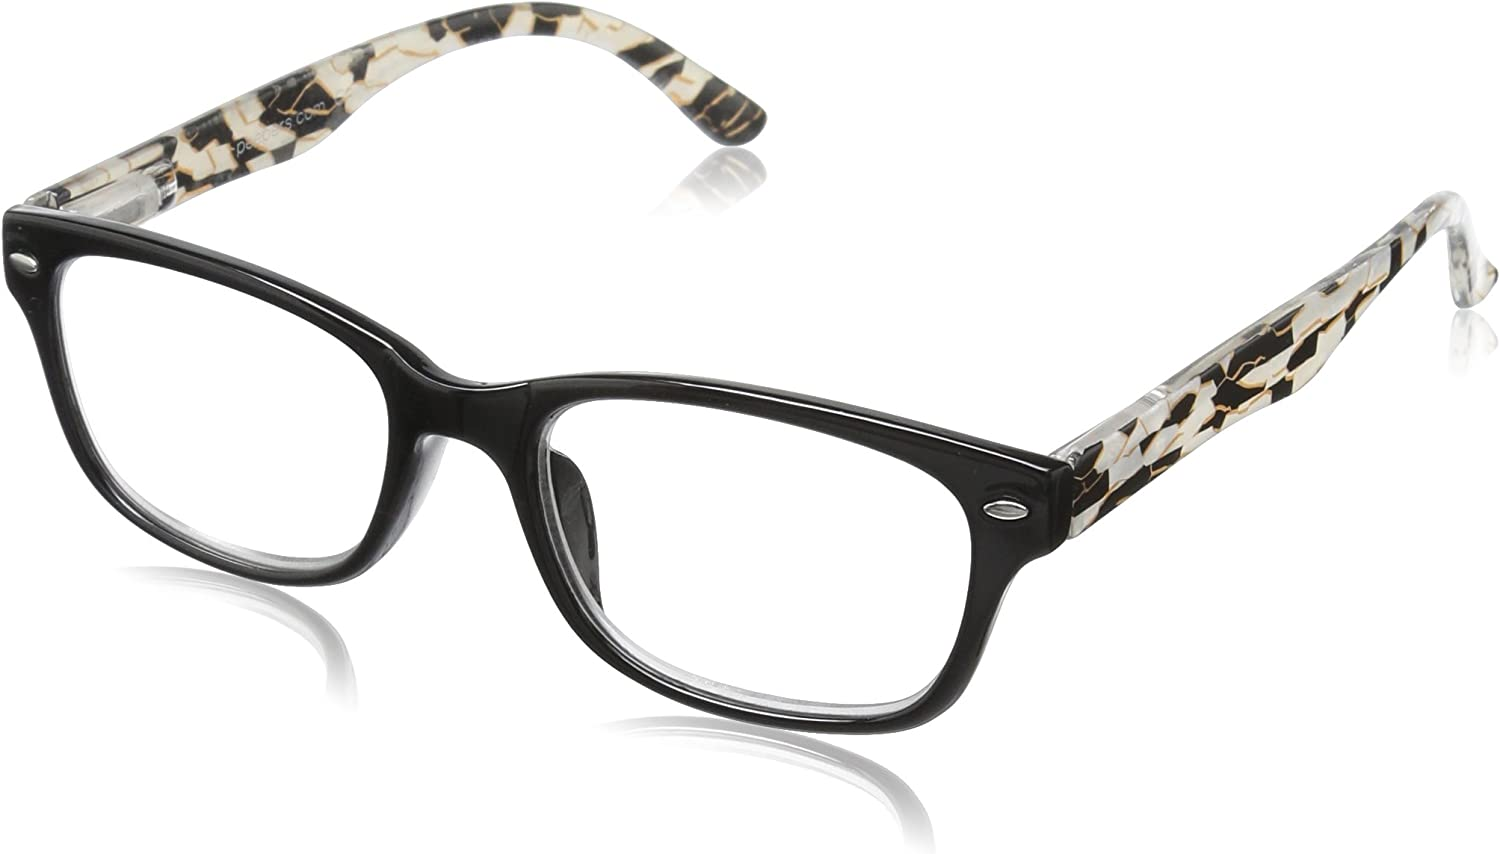 Peepers by PeeperSpecs Women's Soho Rectangular Reading Glasses, Black, 51 mm + 2.25